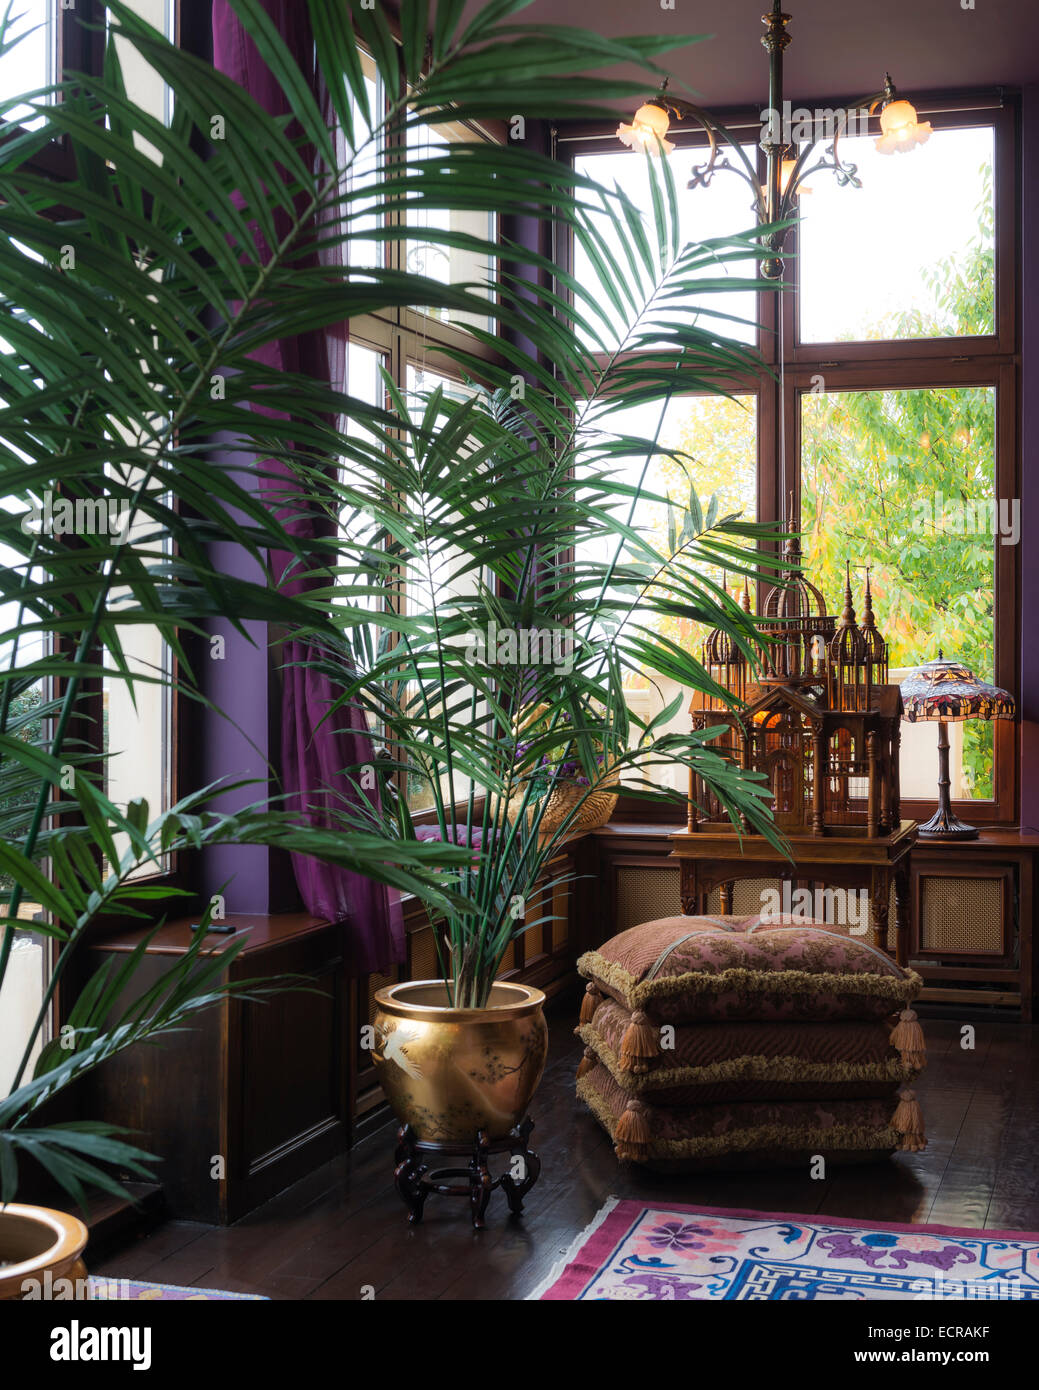 Palms potted in gold puts in purple drawing room with floral rug and piled floor cushions - Stock Image